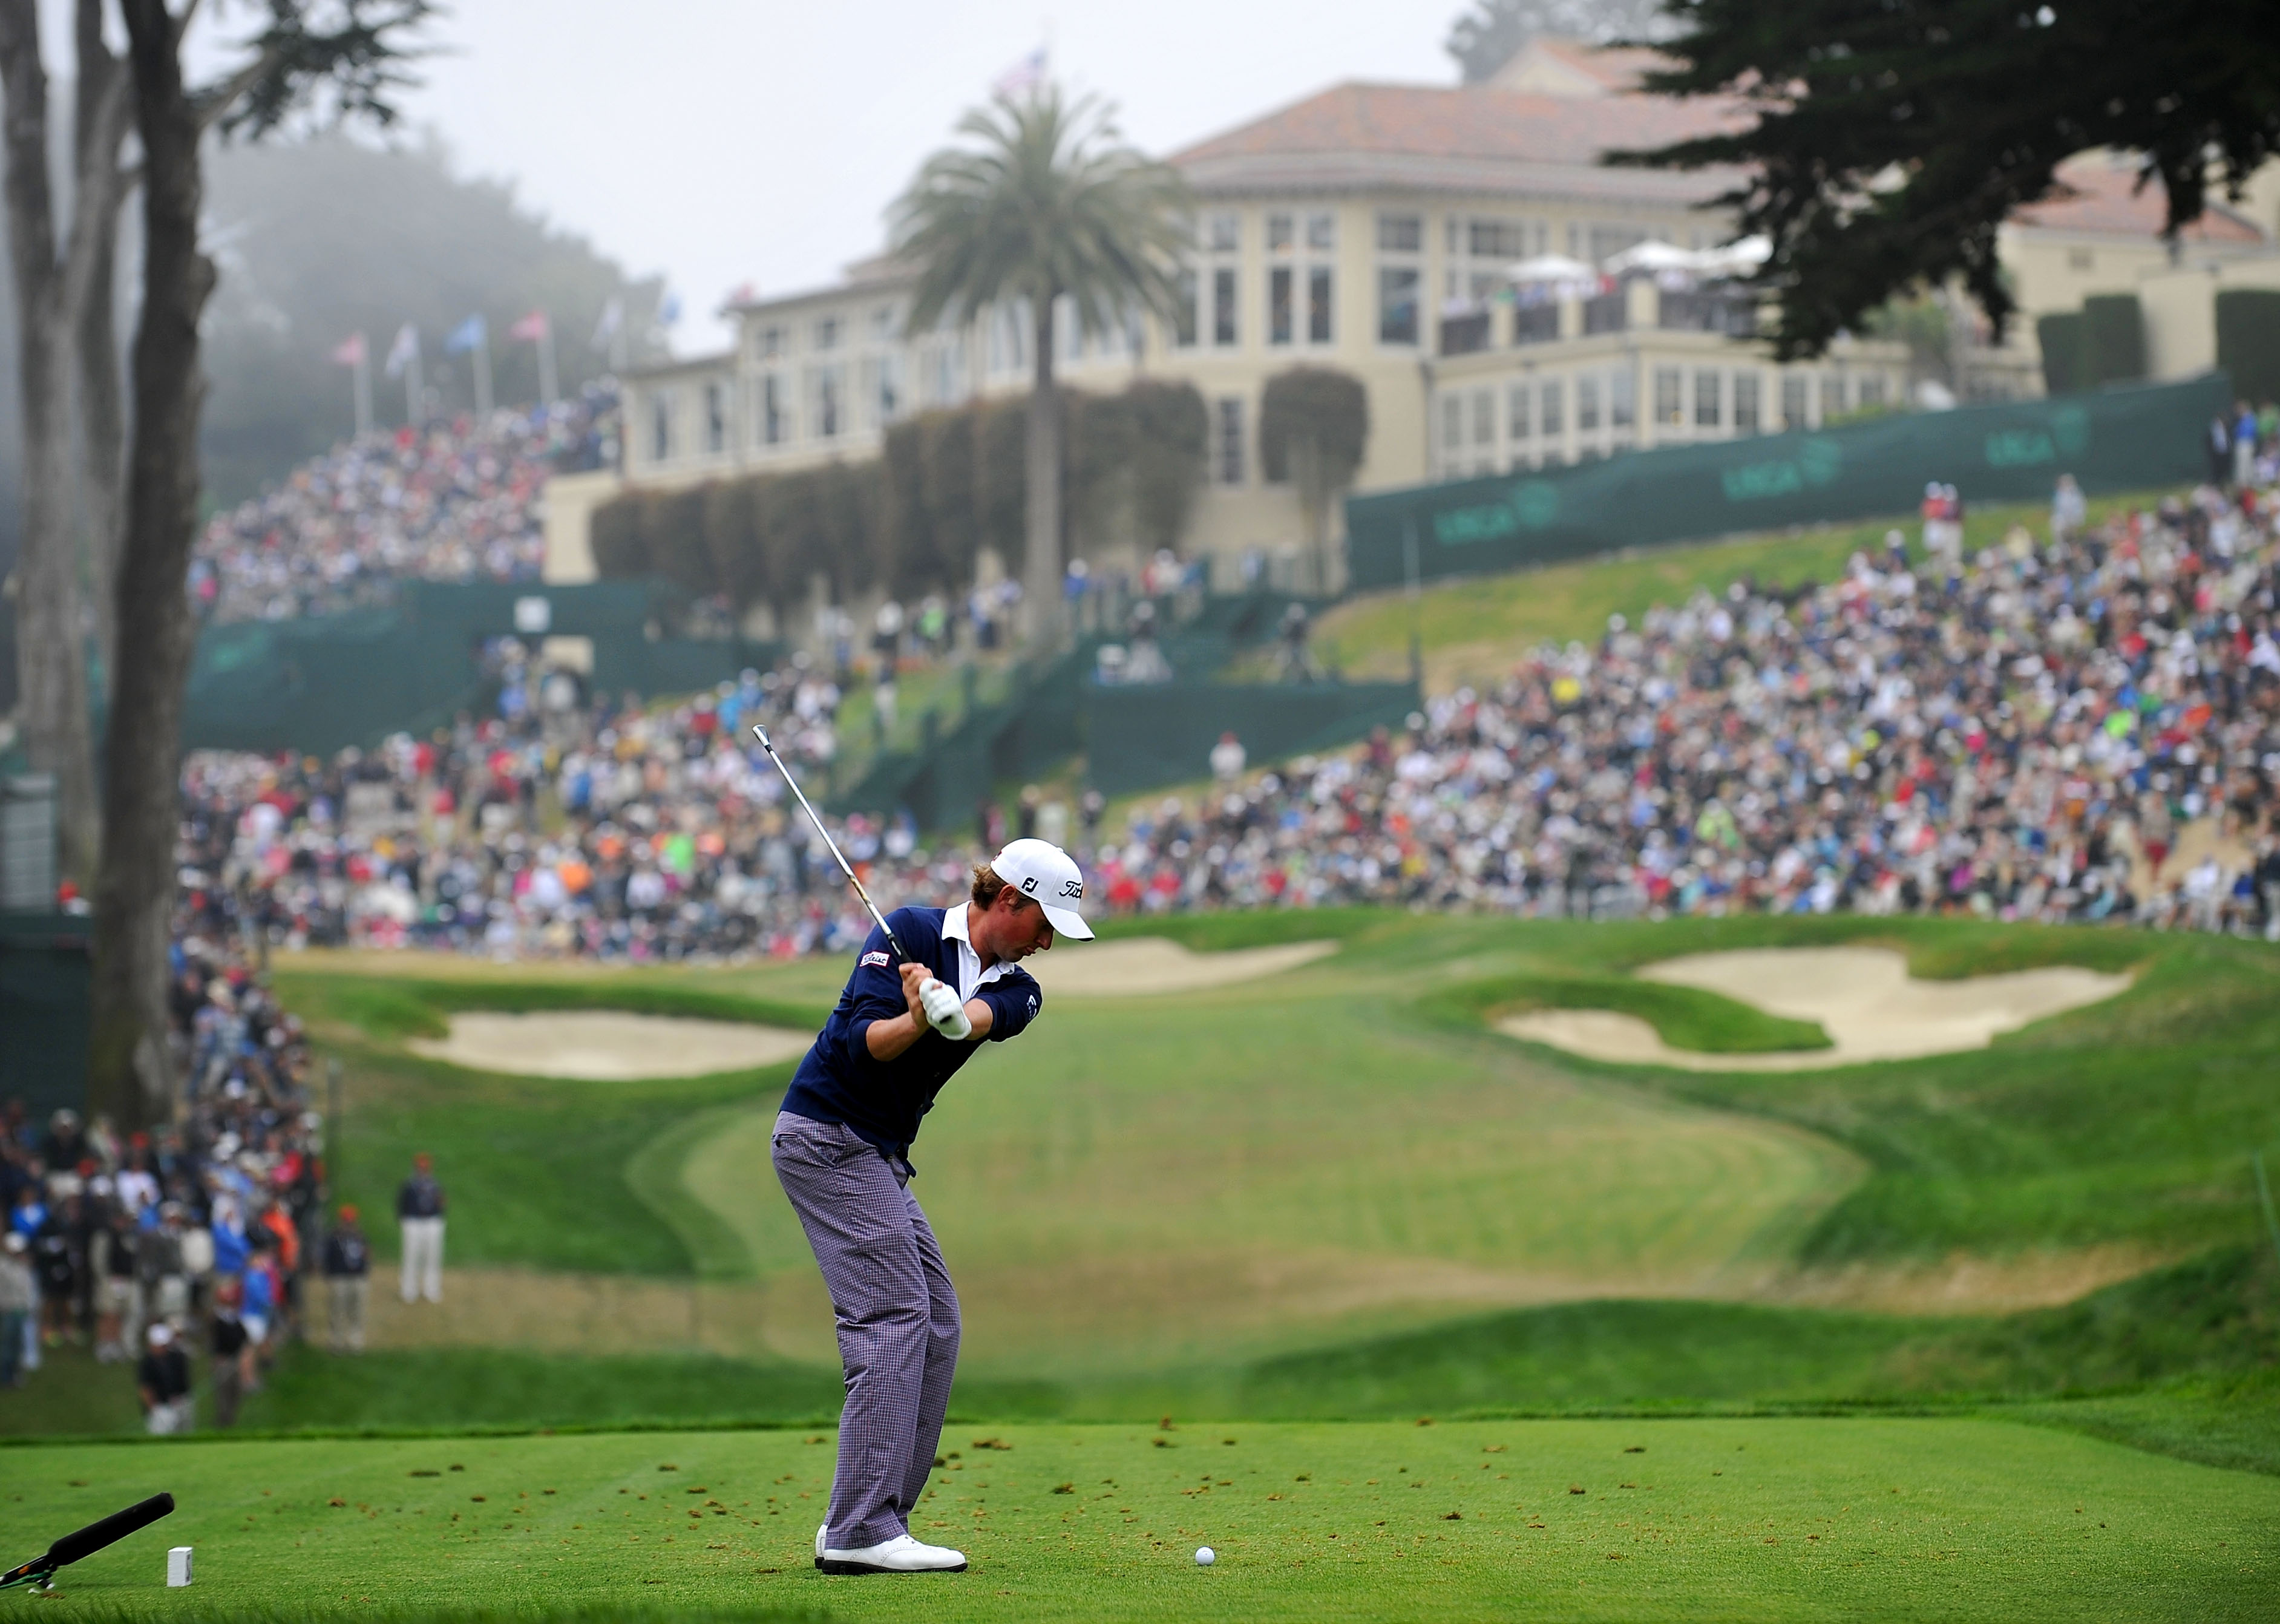 Webb Simpson takes his tee shot in the US Open at the Olympic Club, 2012 (Photo: Stuart Franklin/Getty Images)